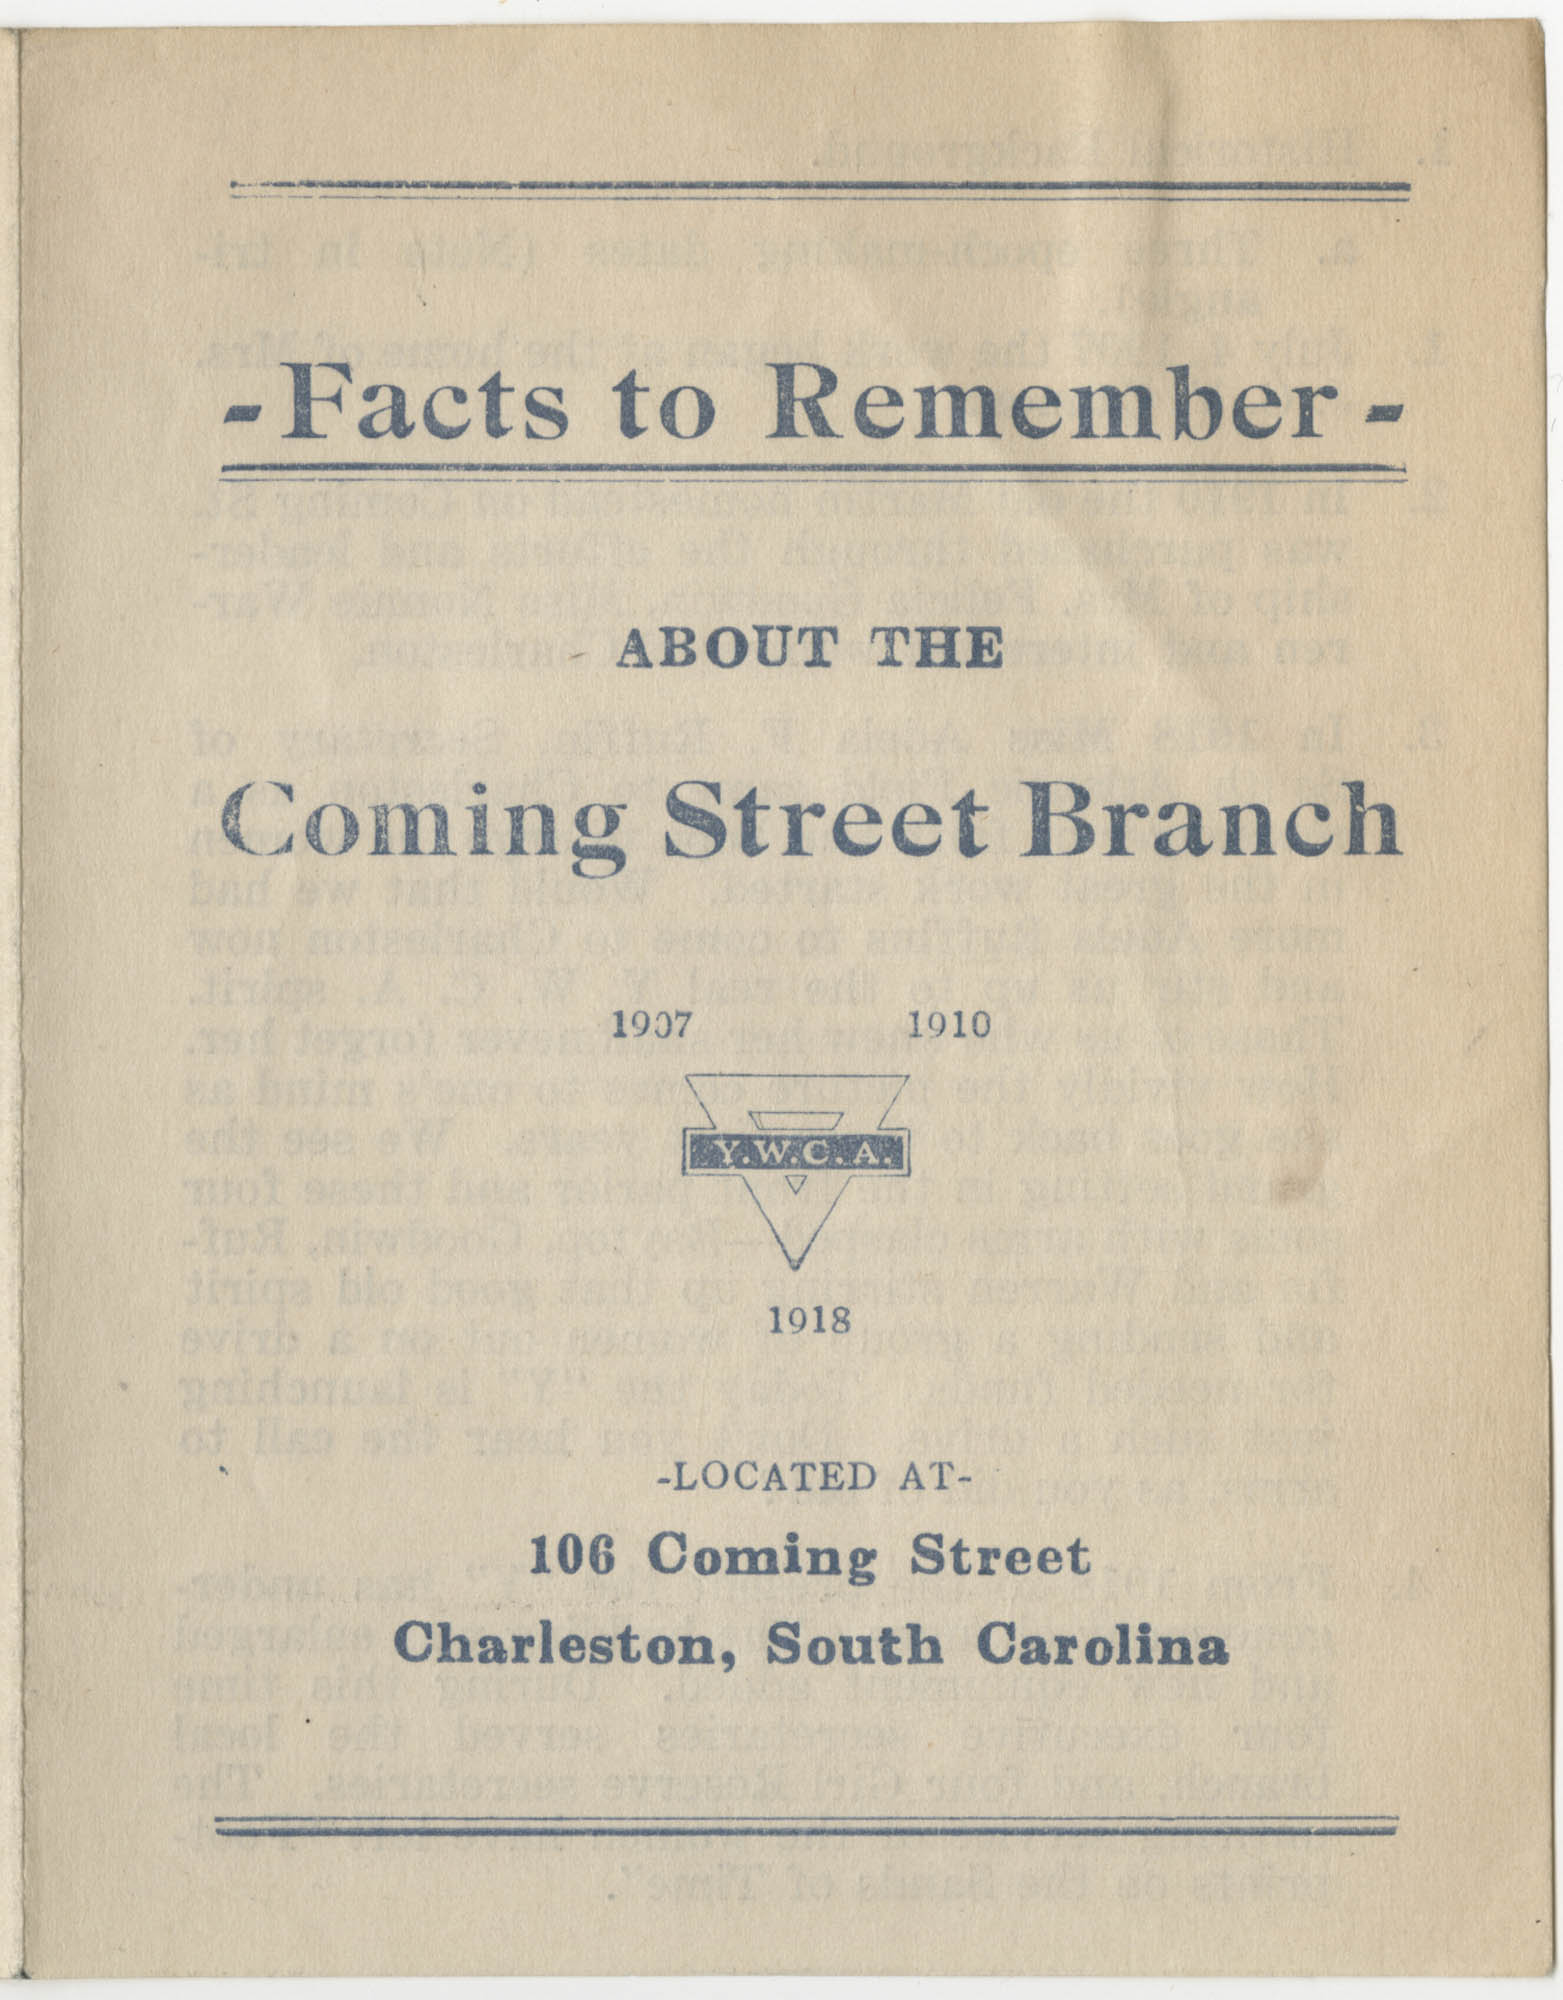 Facts to Remember About The Coming Street Branch, Y.W.C.A.